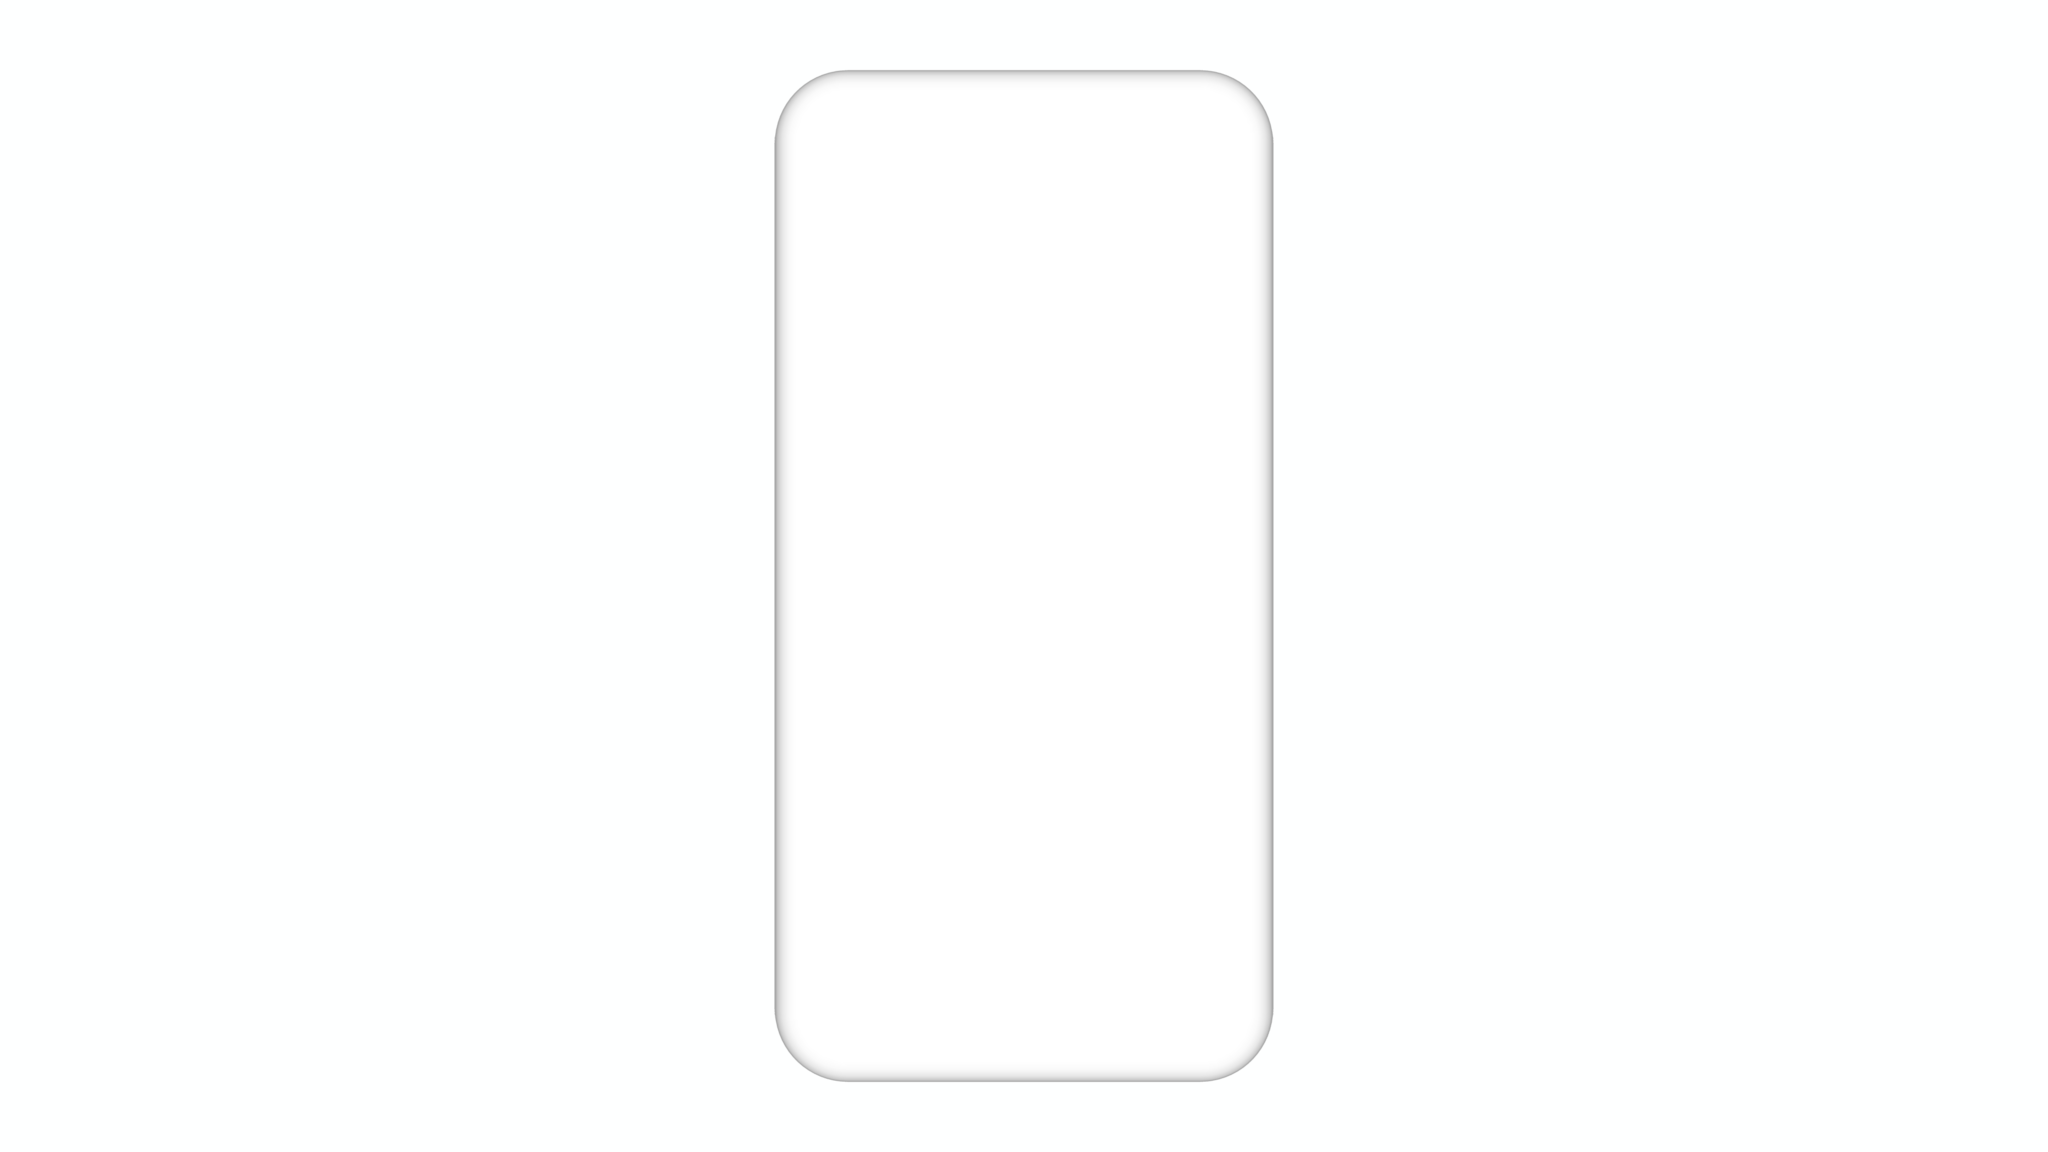 White clay phone mockup from behind